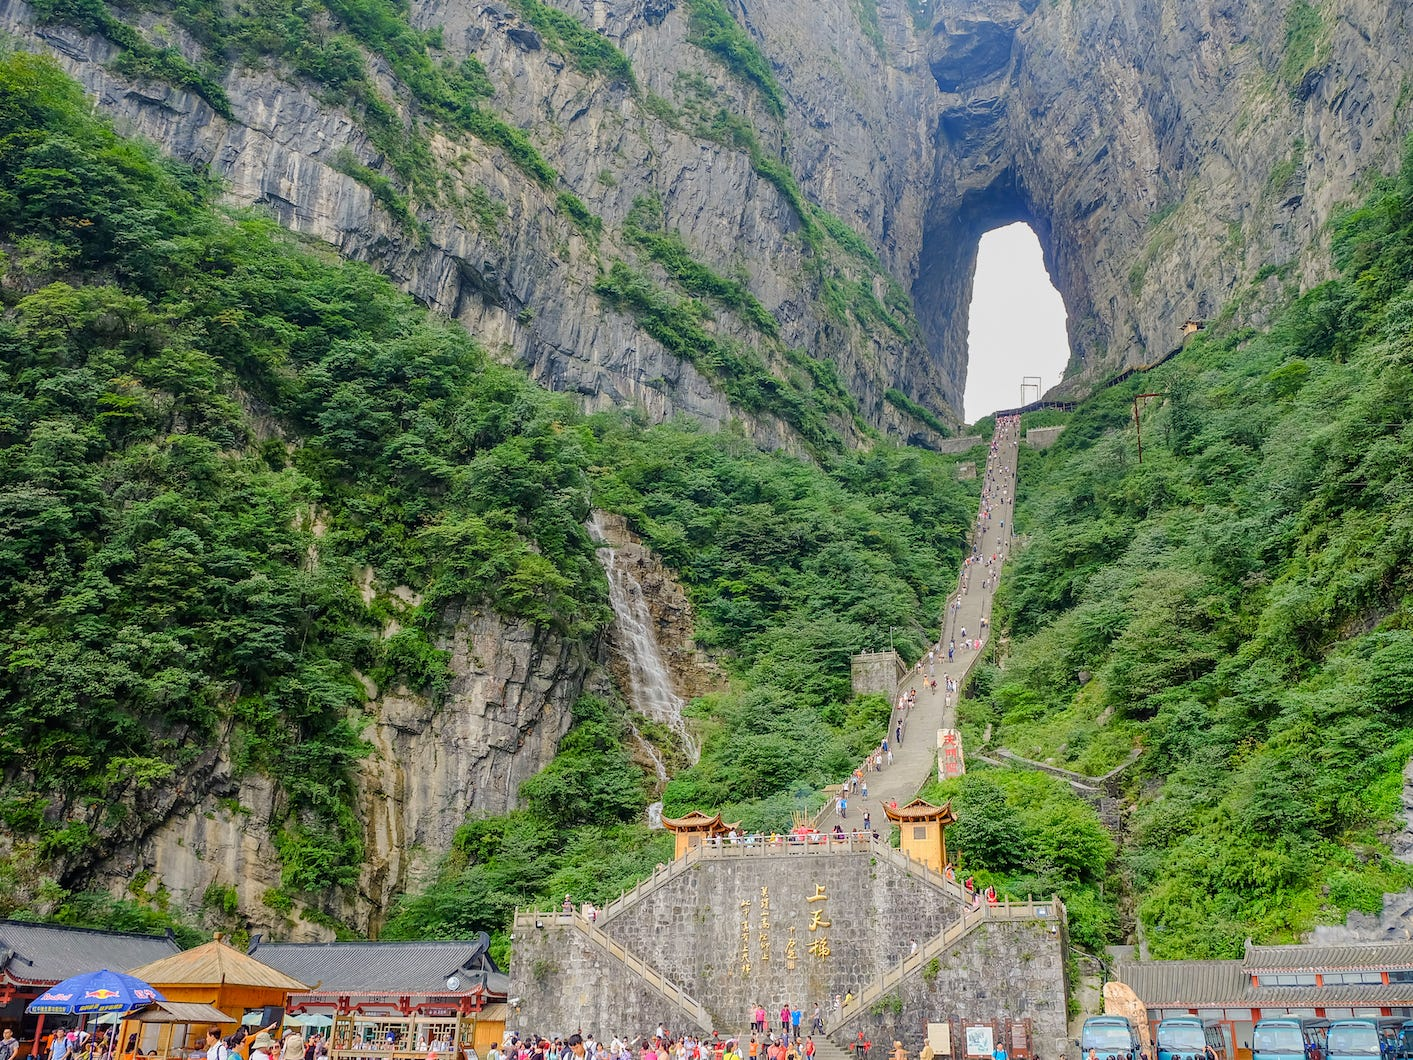 """Slide 48 of 51: Situated 5,000 feet above sea level, Tianmen Cave is one of the highest naturally formed arches on the planet. Visitors have to mount a 999-step """"stairway to heaven"""" to reach the site."""